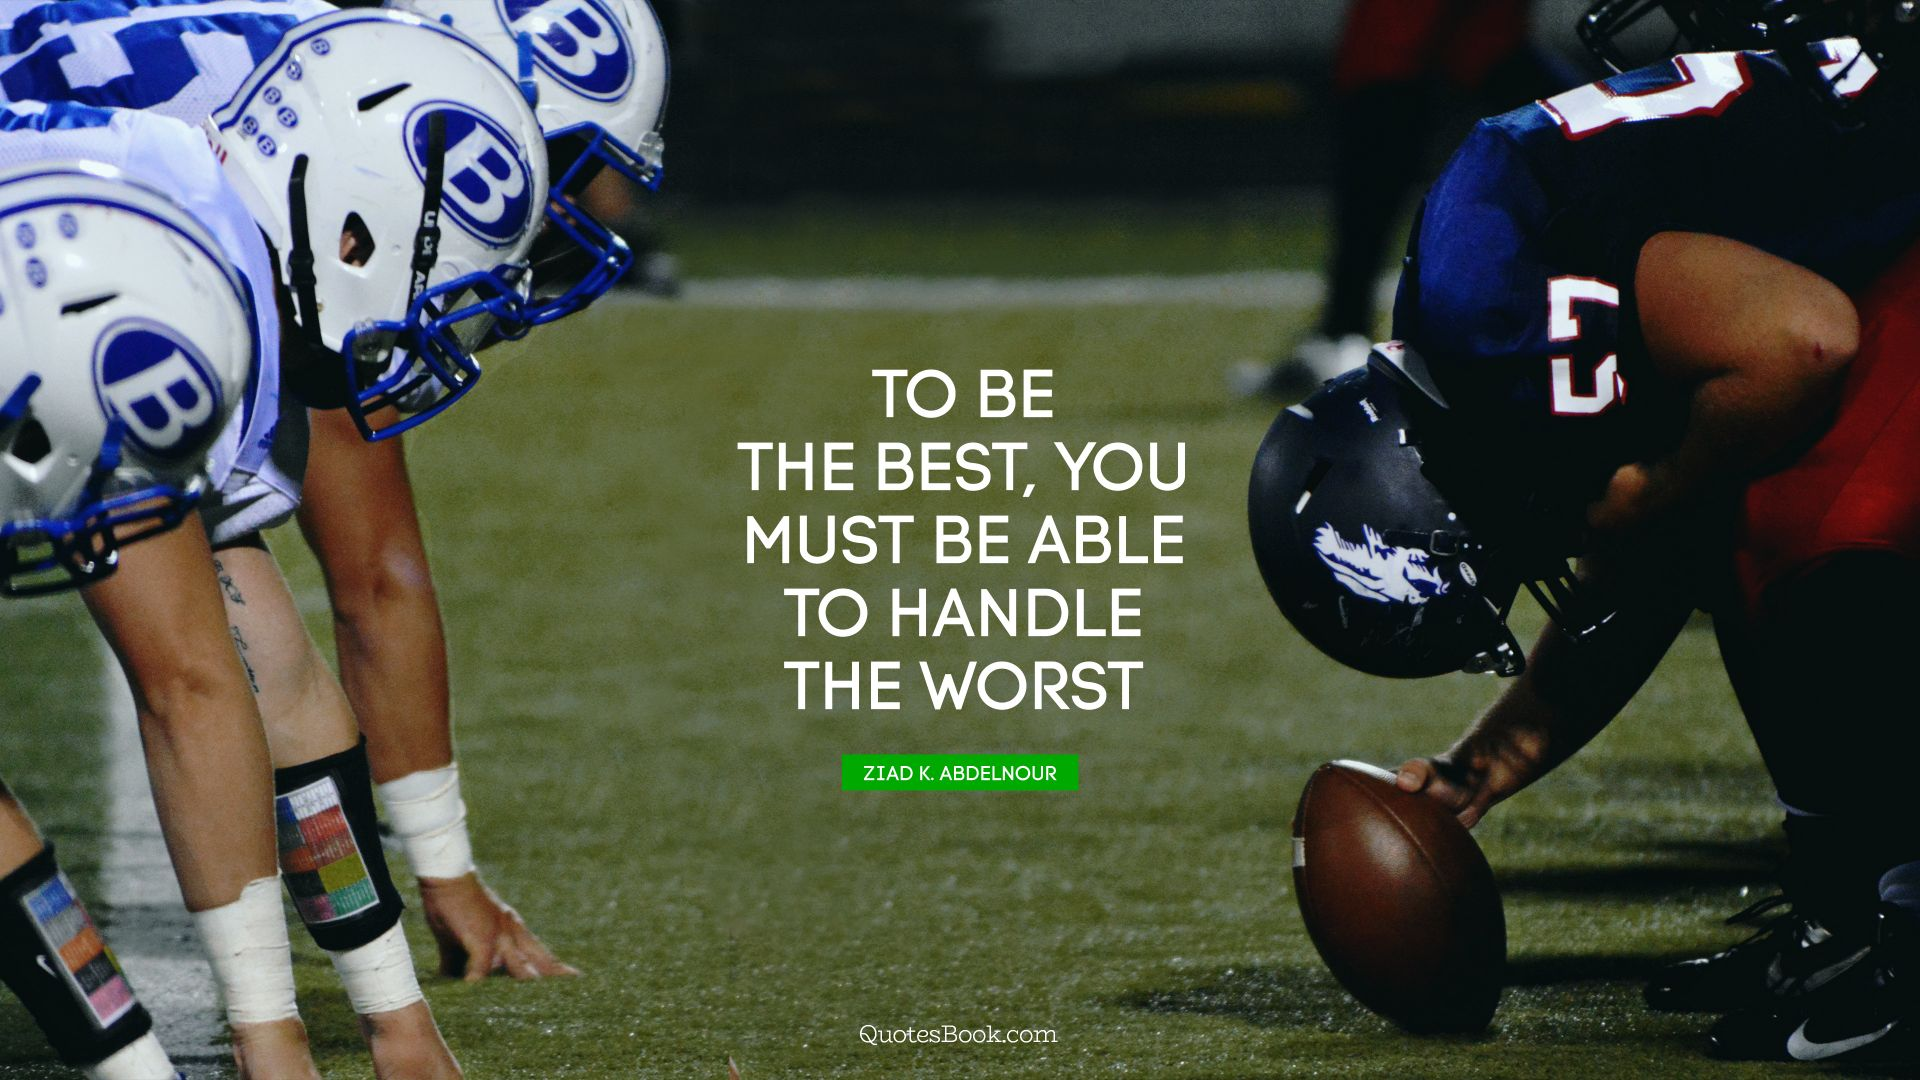 To be the best, you must be able to handle the worst. - Quote by Ziad K. Abdelnour